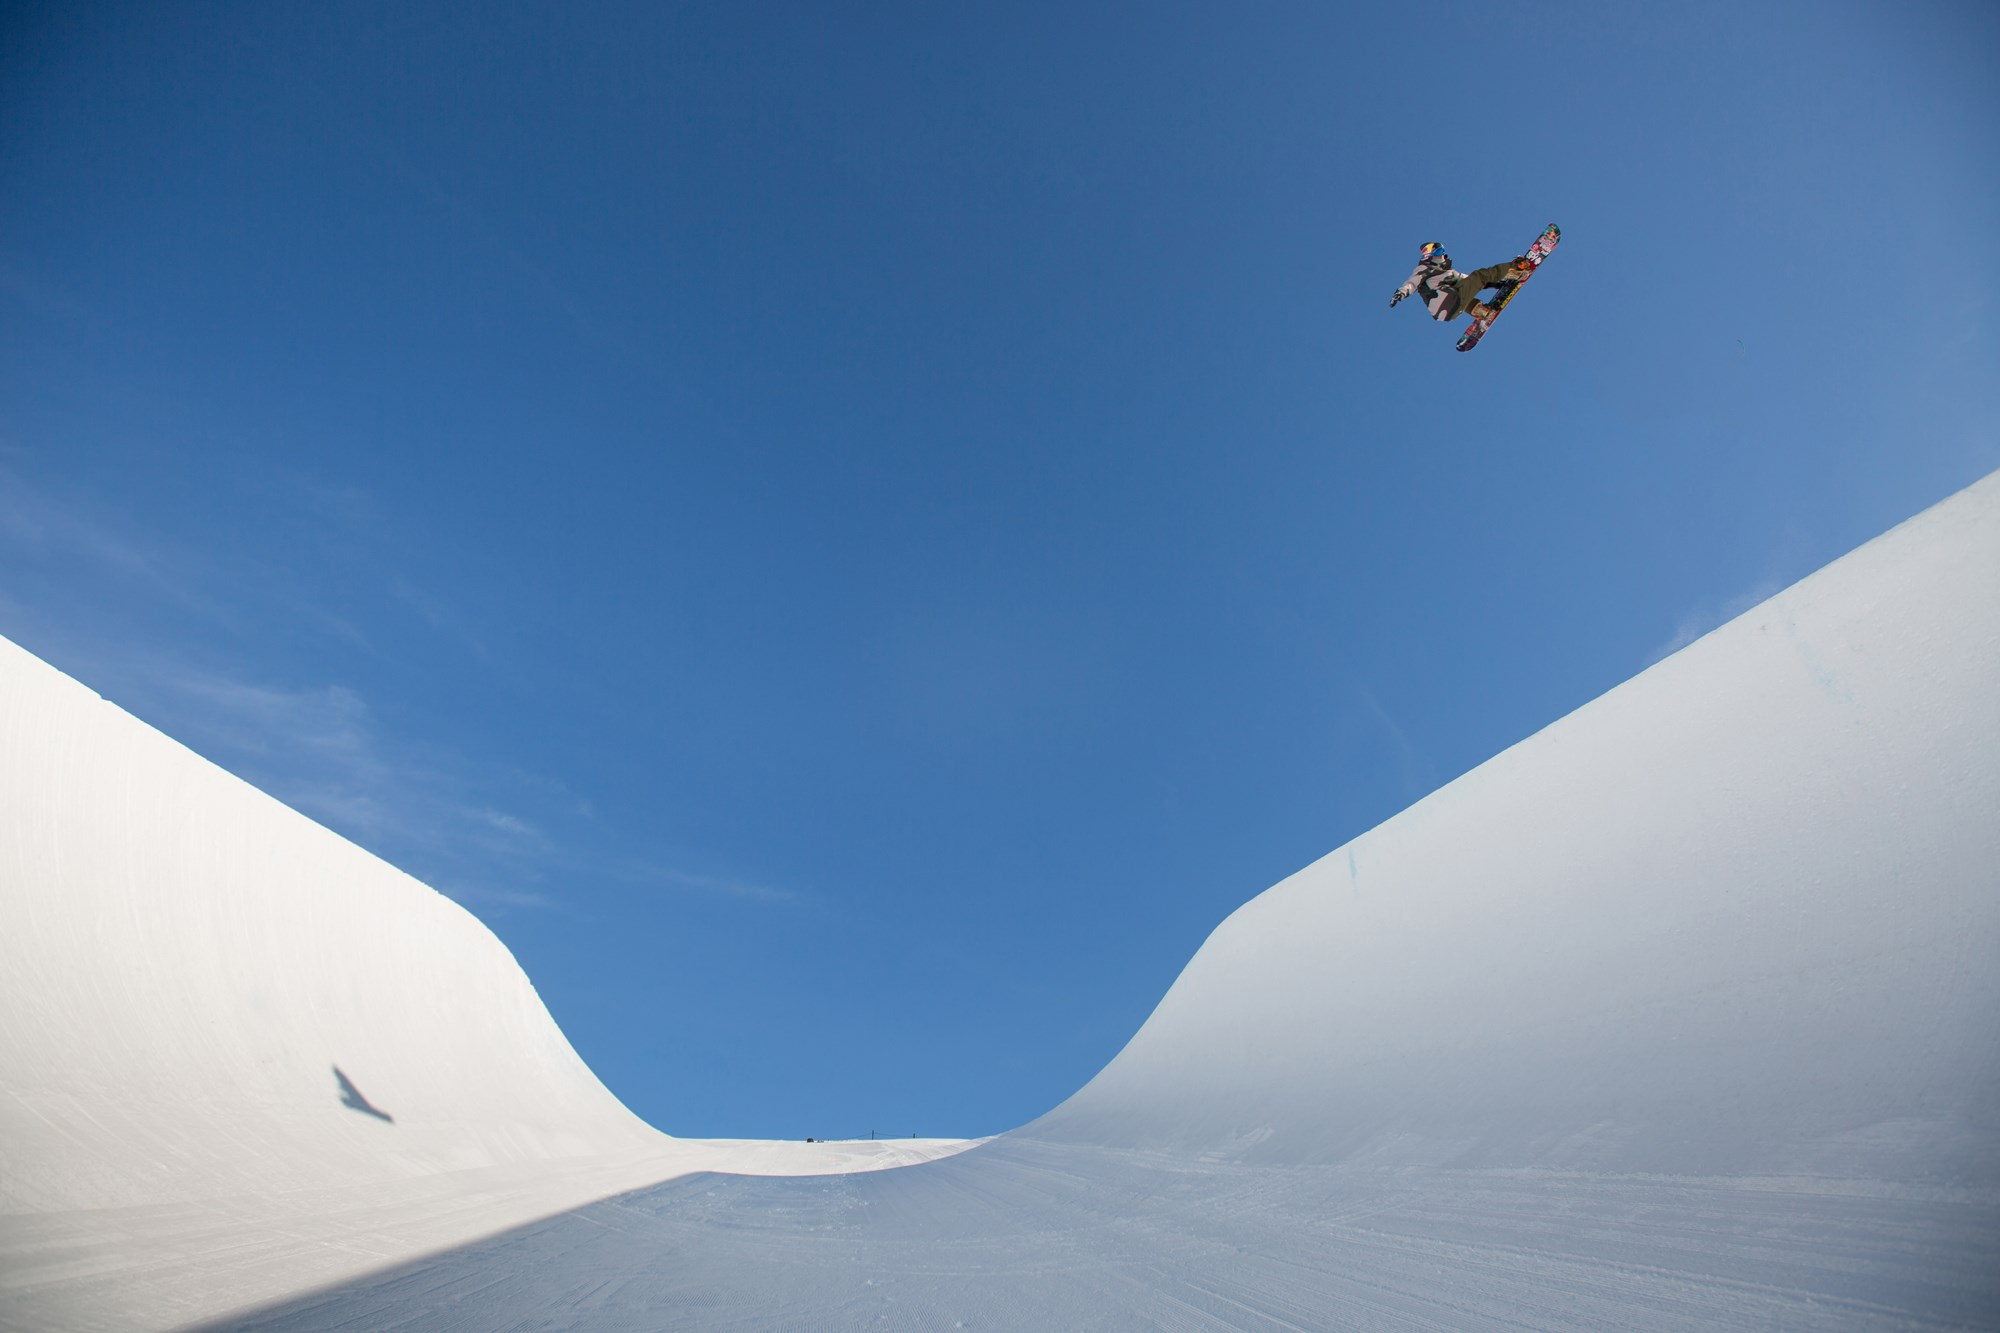 Cardrona Alpine Resort Olympic Half Pipe Louie Vito